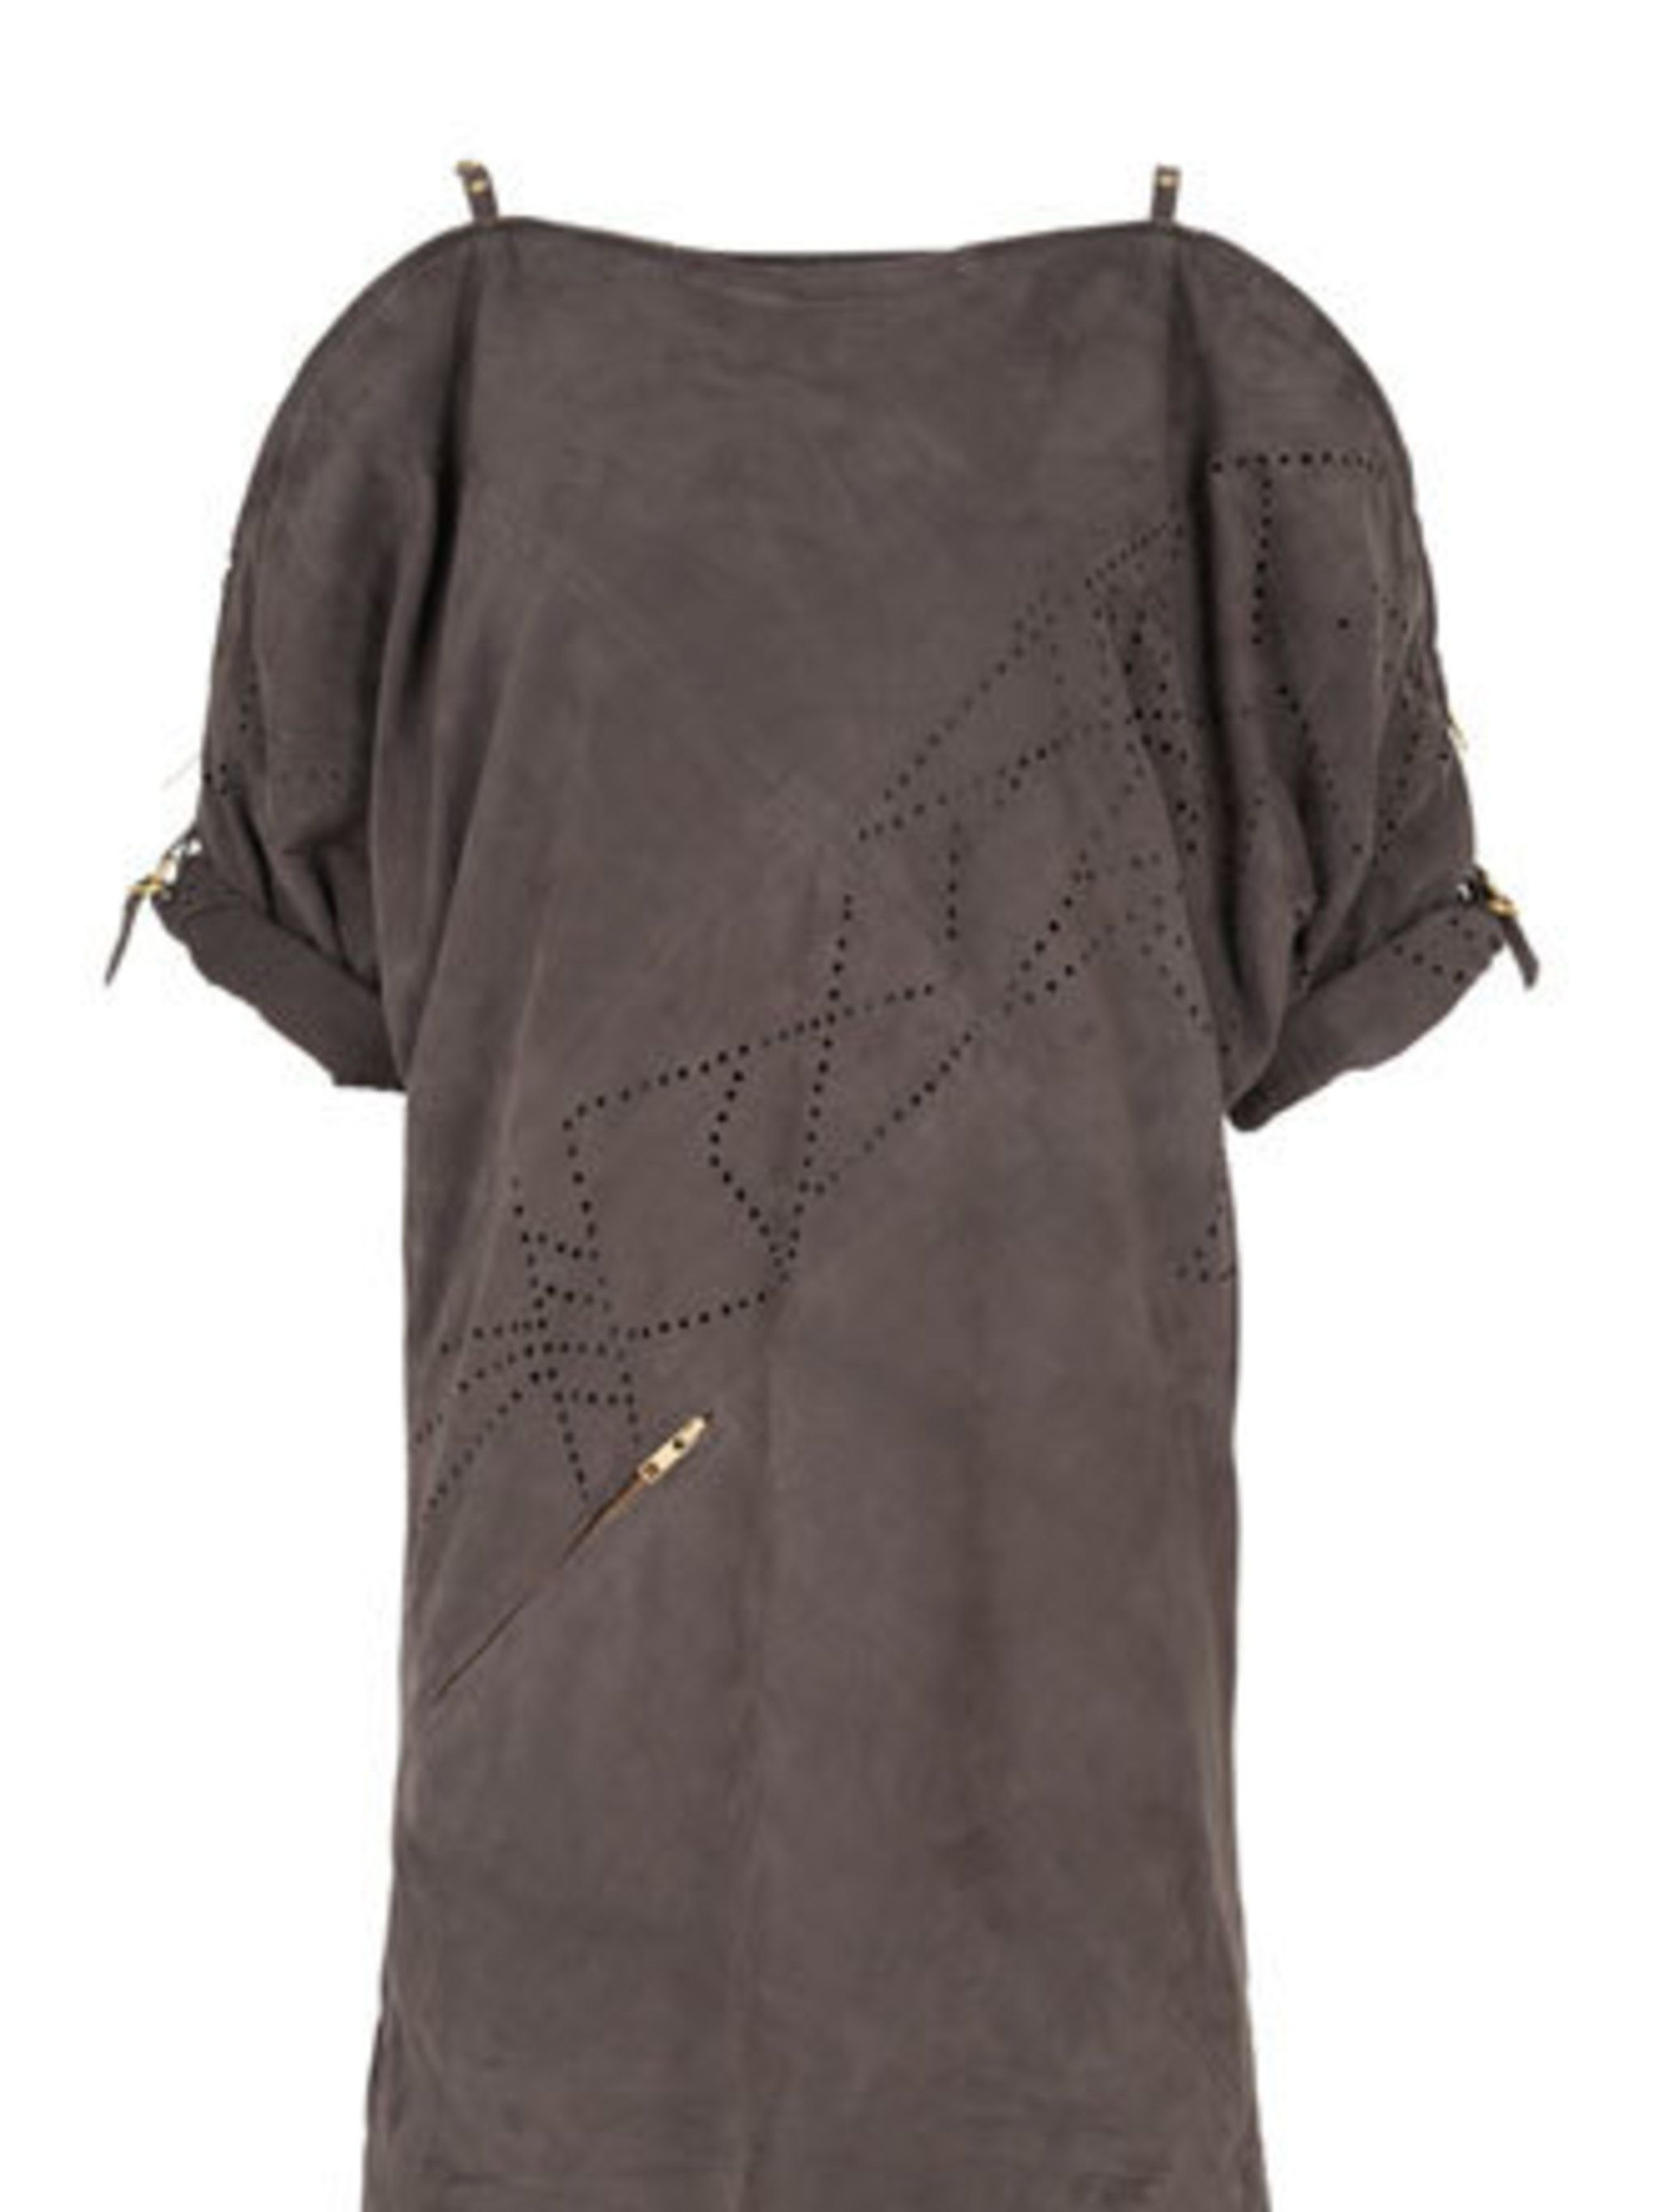 """<p>Whistles' suede dress is a winner. The soft chocolate colour, gold zip detail and rolled up sleeves scream effortless cool. Just add a pair of Ray Bans and you're good to go.</p><p>Dress, £250 by <a href=""""http://www.whistles.co.uk/"""">Whistles</a></p>"""